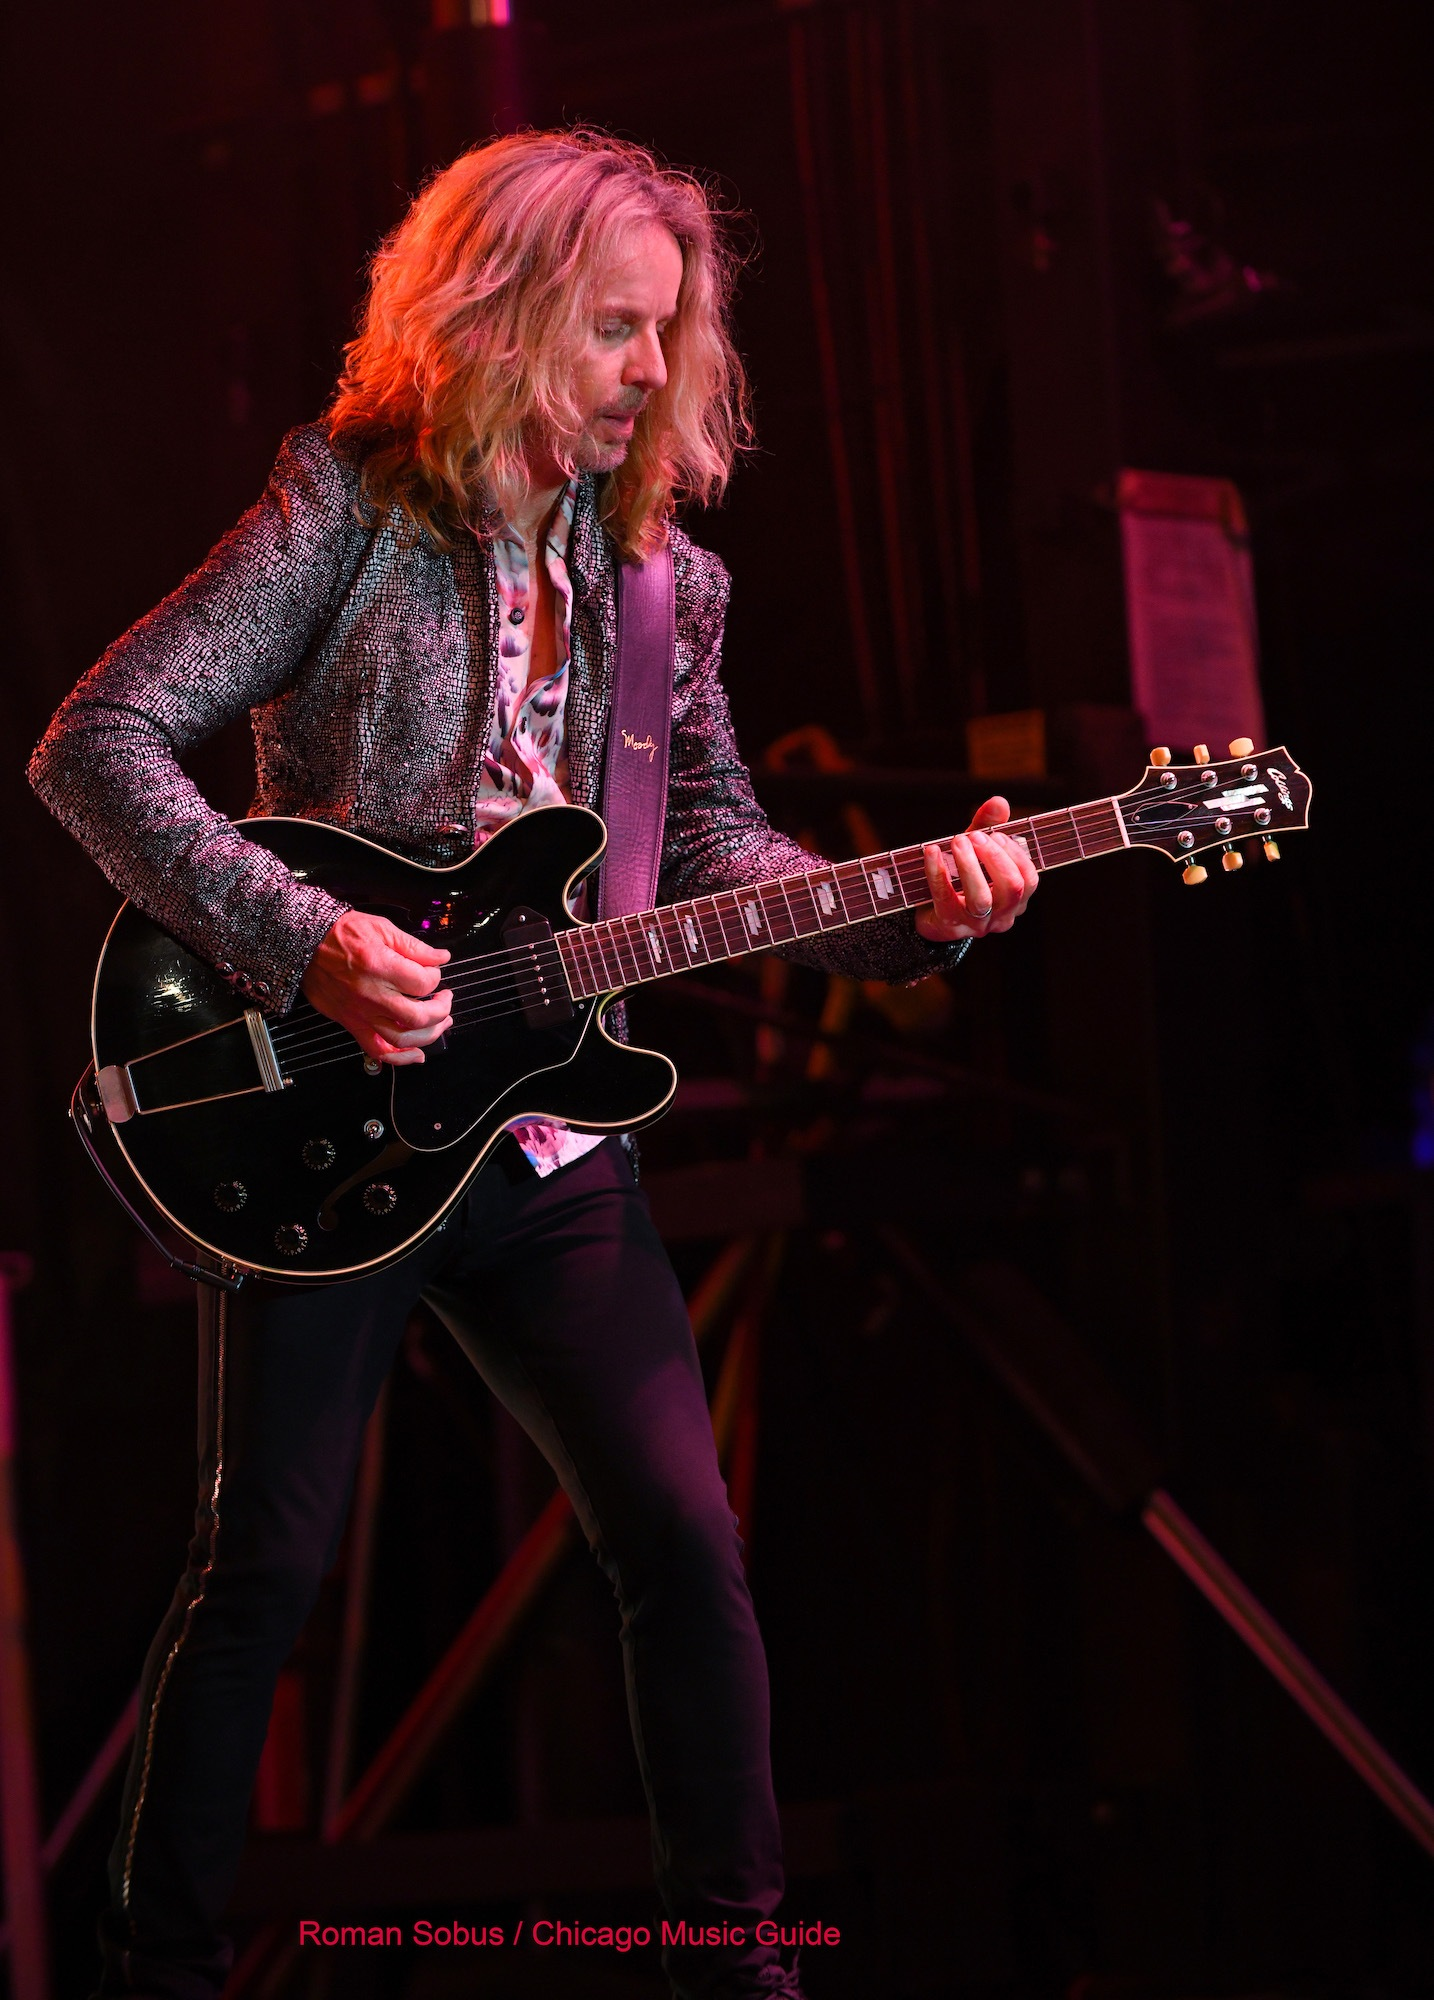 STYX Live at McHenry County Fairgrounds [GALLERY] 2